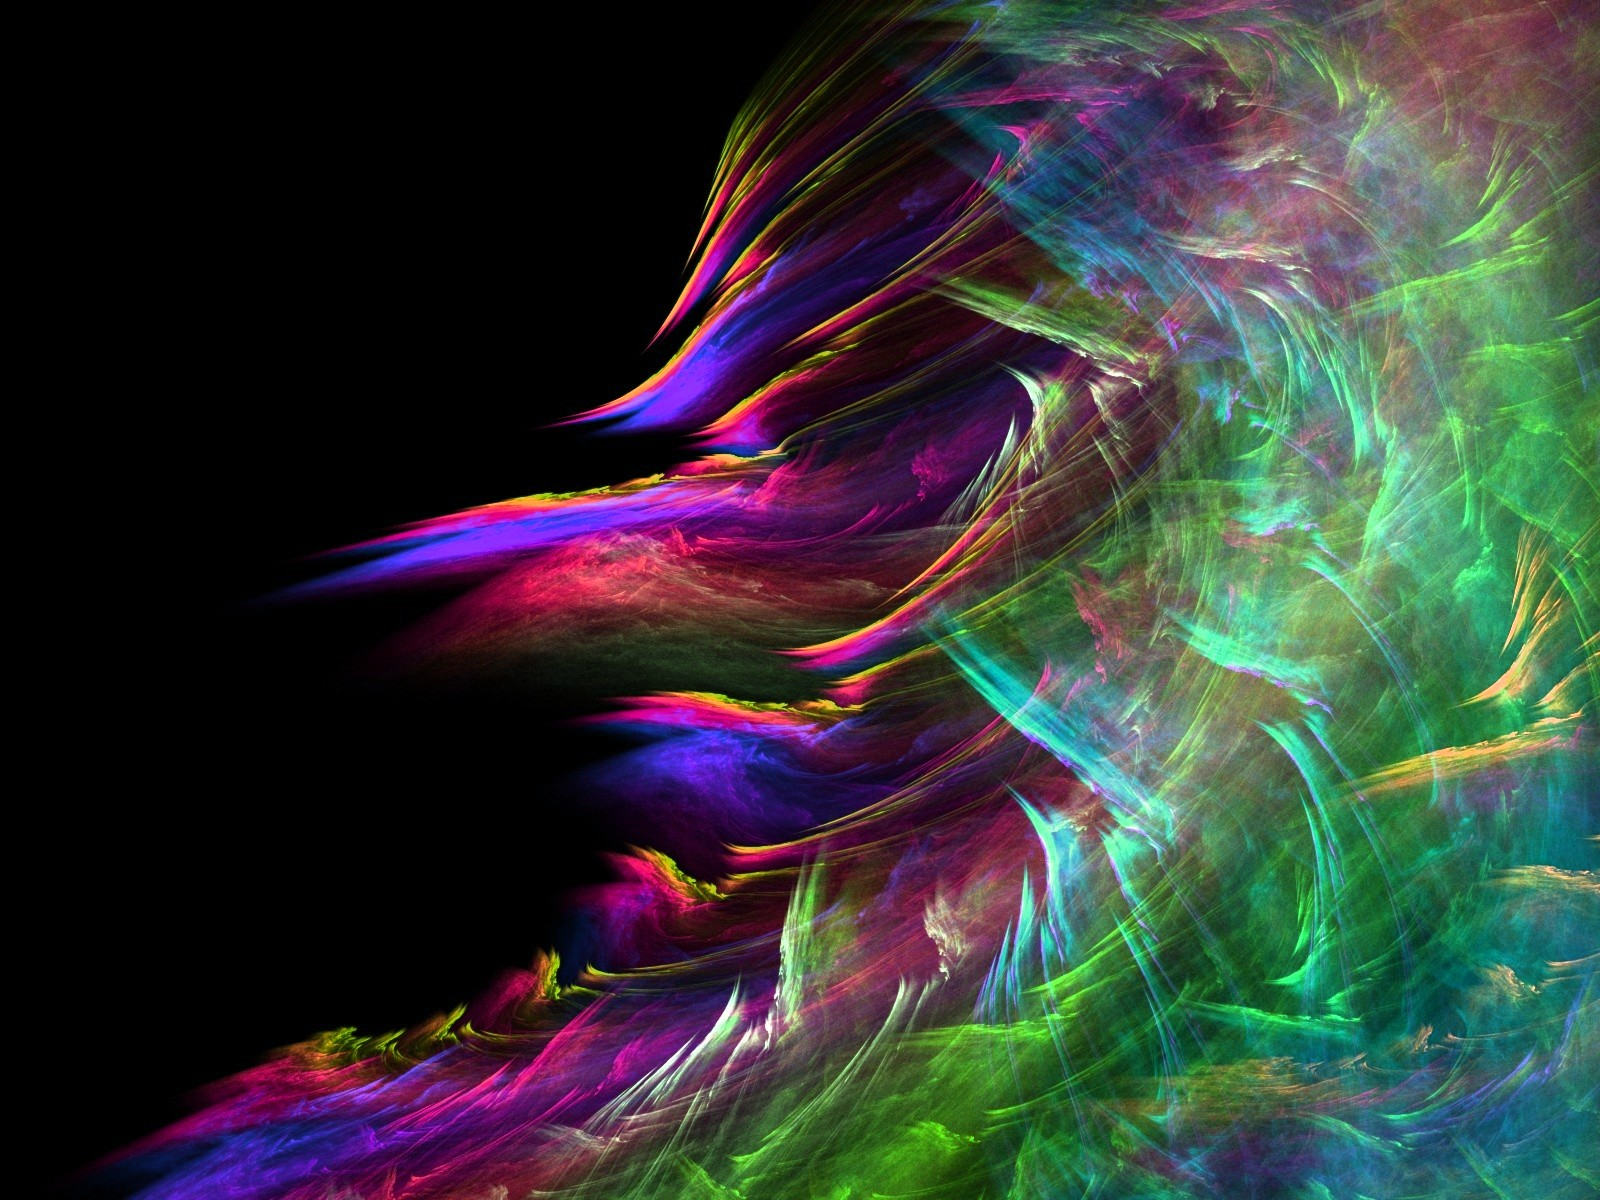 Cool Colorful Wallpaper Backgrounds - WallpaperSafari - photo#44